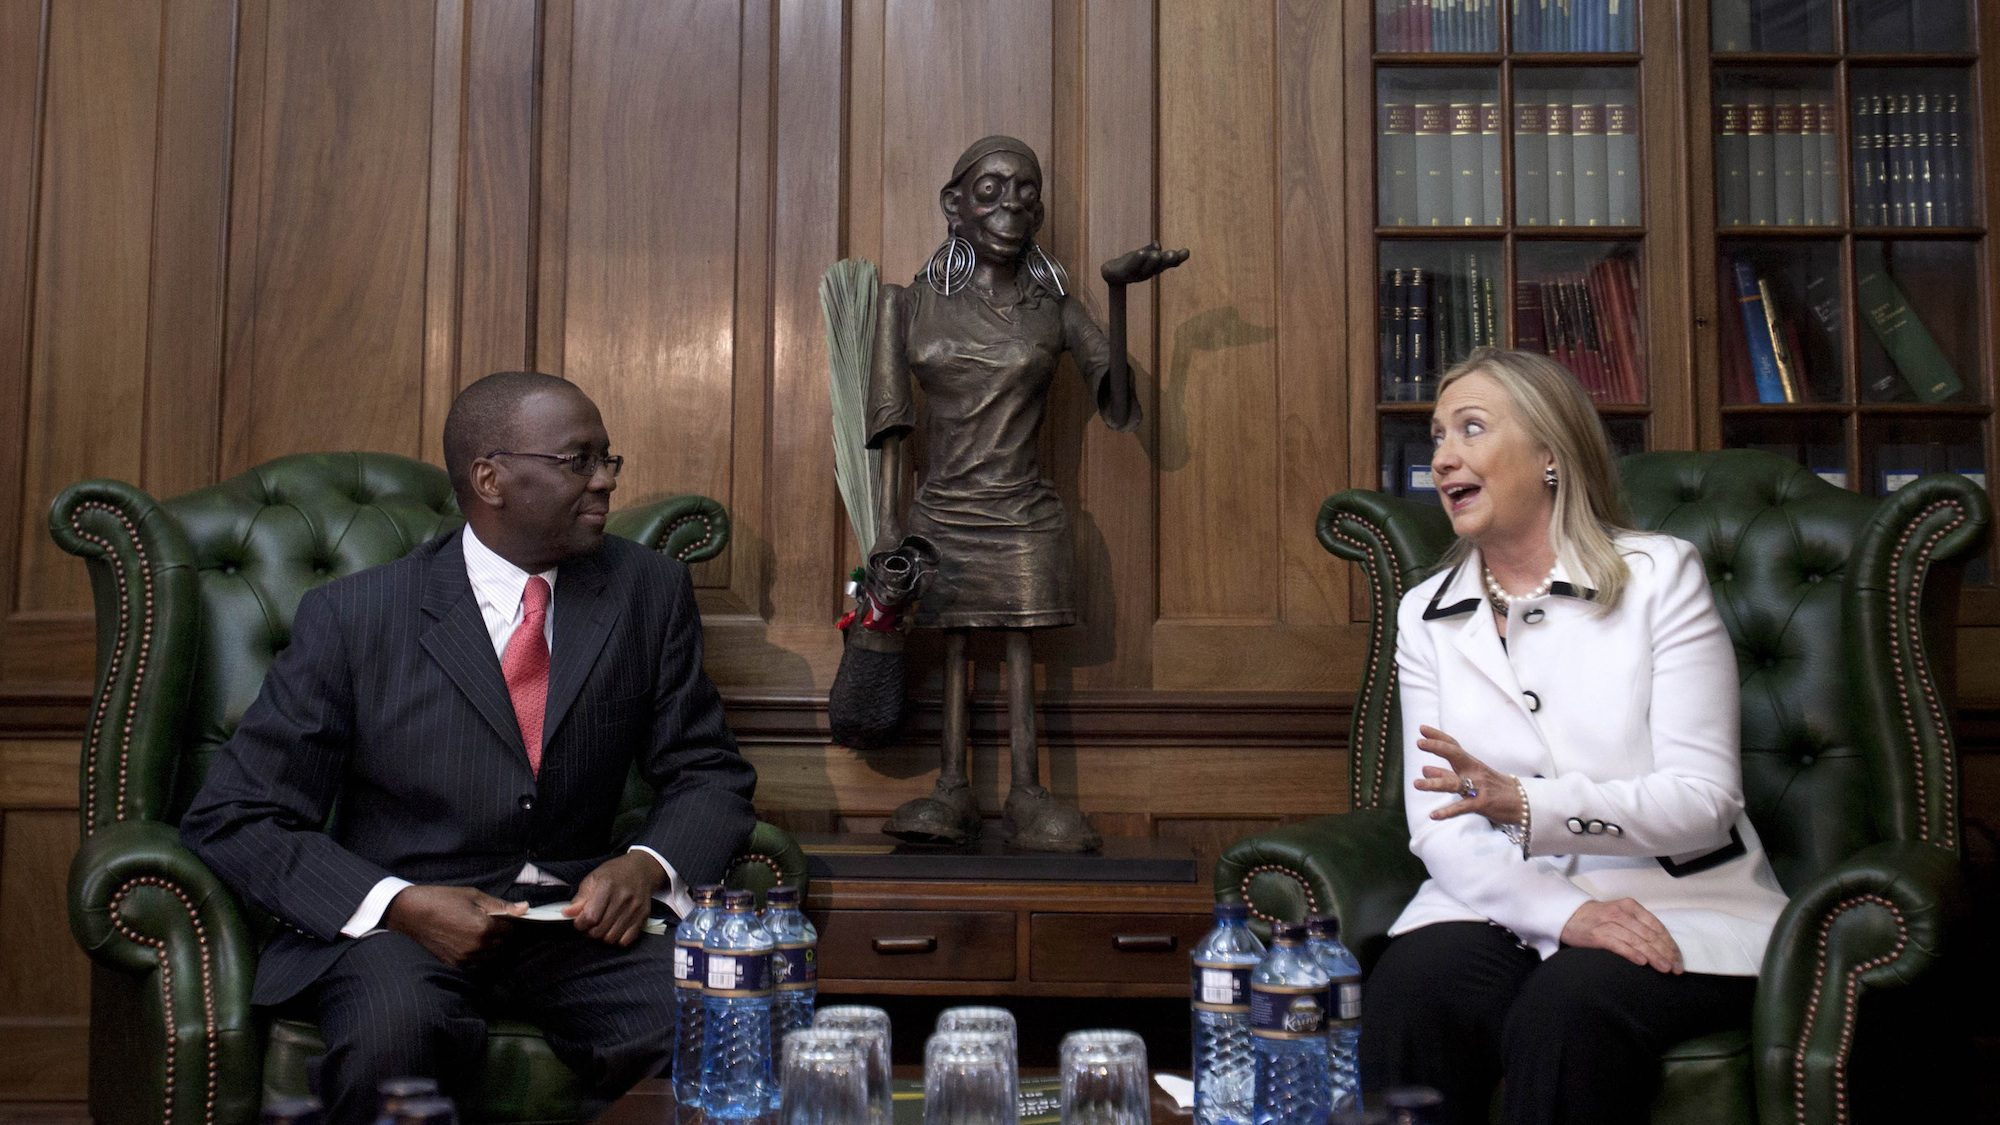 Secretary of State Hillary Clinton (R) speaks with Chief Justice Willy Mutunga at the Supreme Court of Kenya, in Nairobi, Kenya, August 4, 2012.